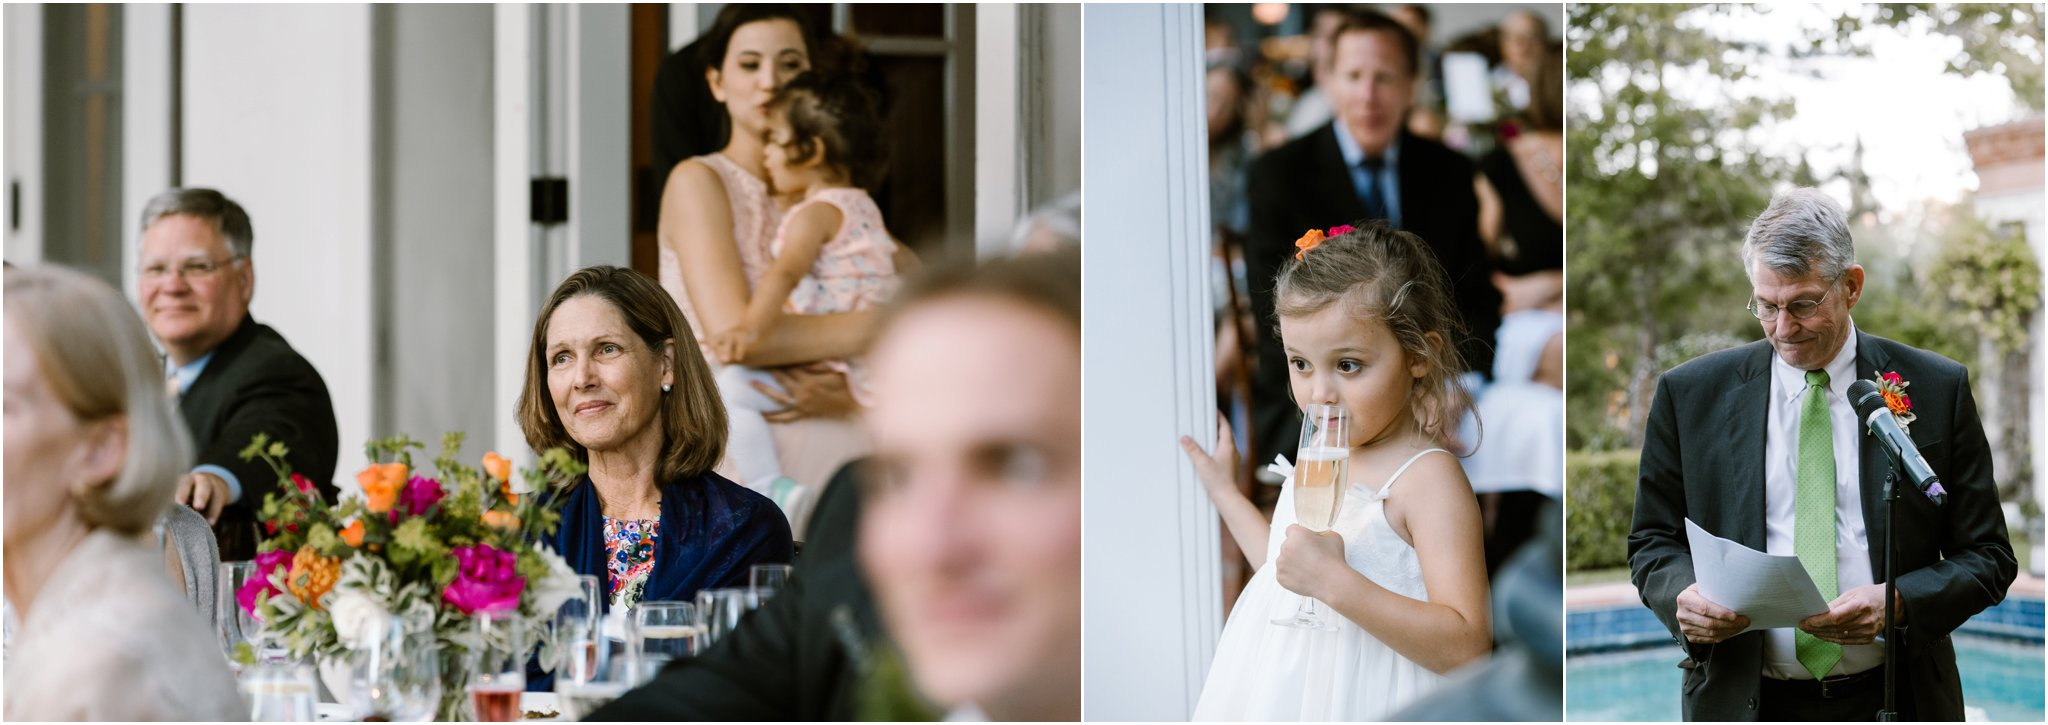 0298Los Poblanos Weddings Blue Rose Photography Studios